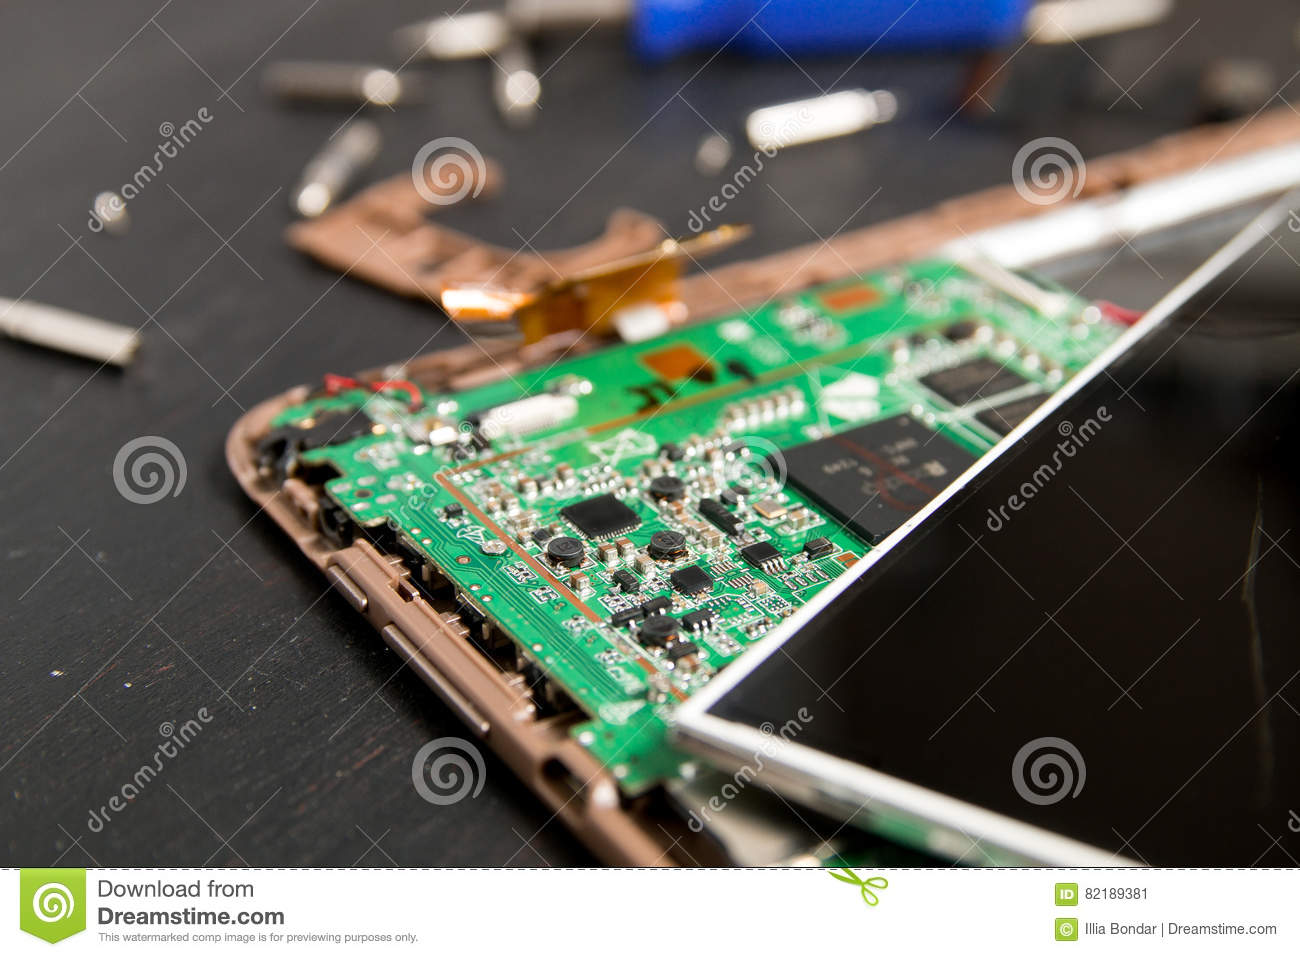 Process of PC Tablet device repair near screwdriver and bit on black wooden background. Disassembled. Broken glass, screen destroy